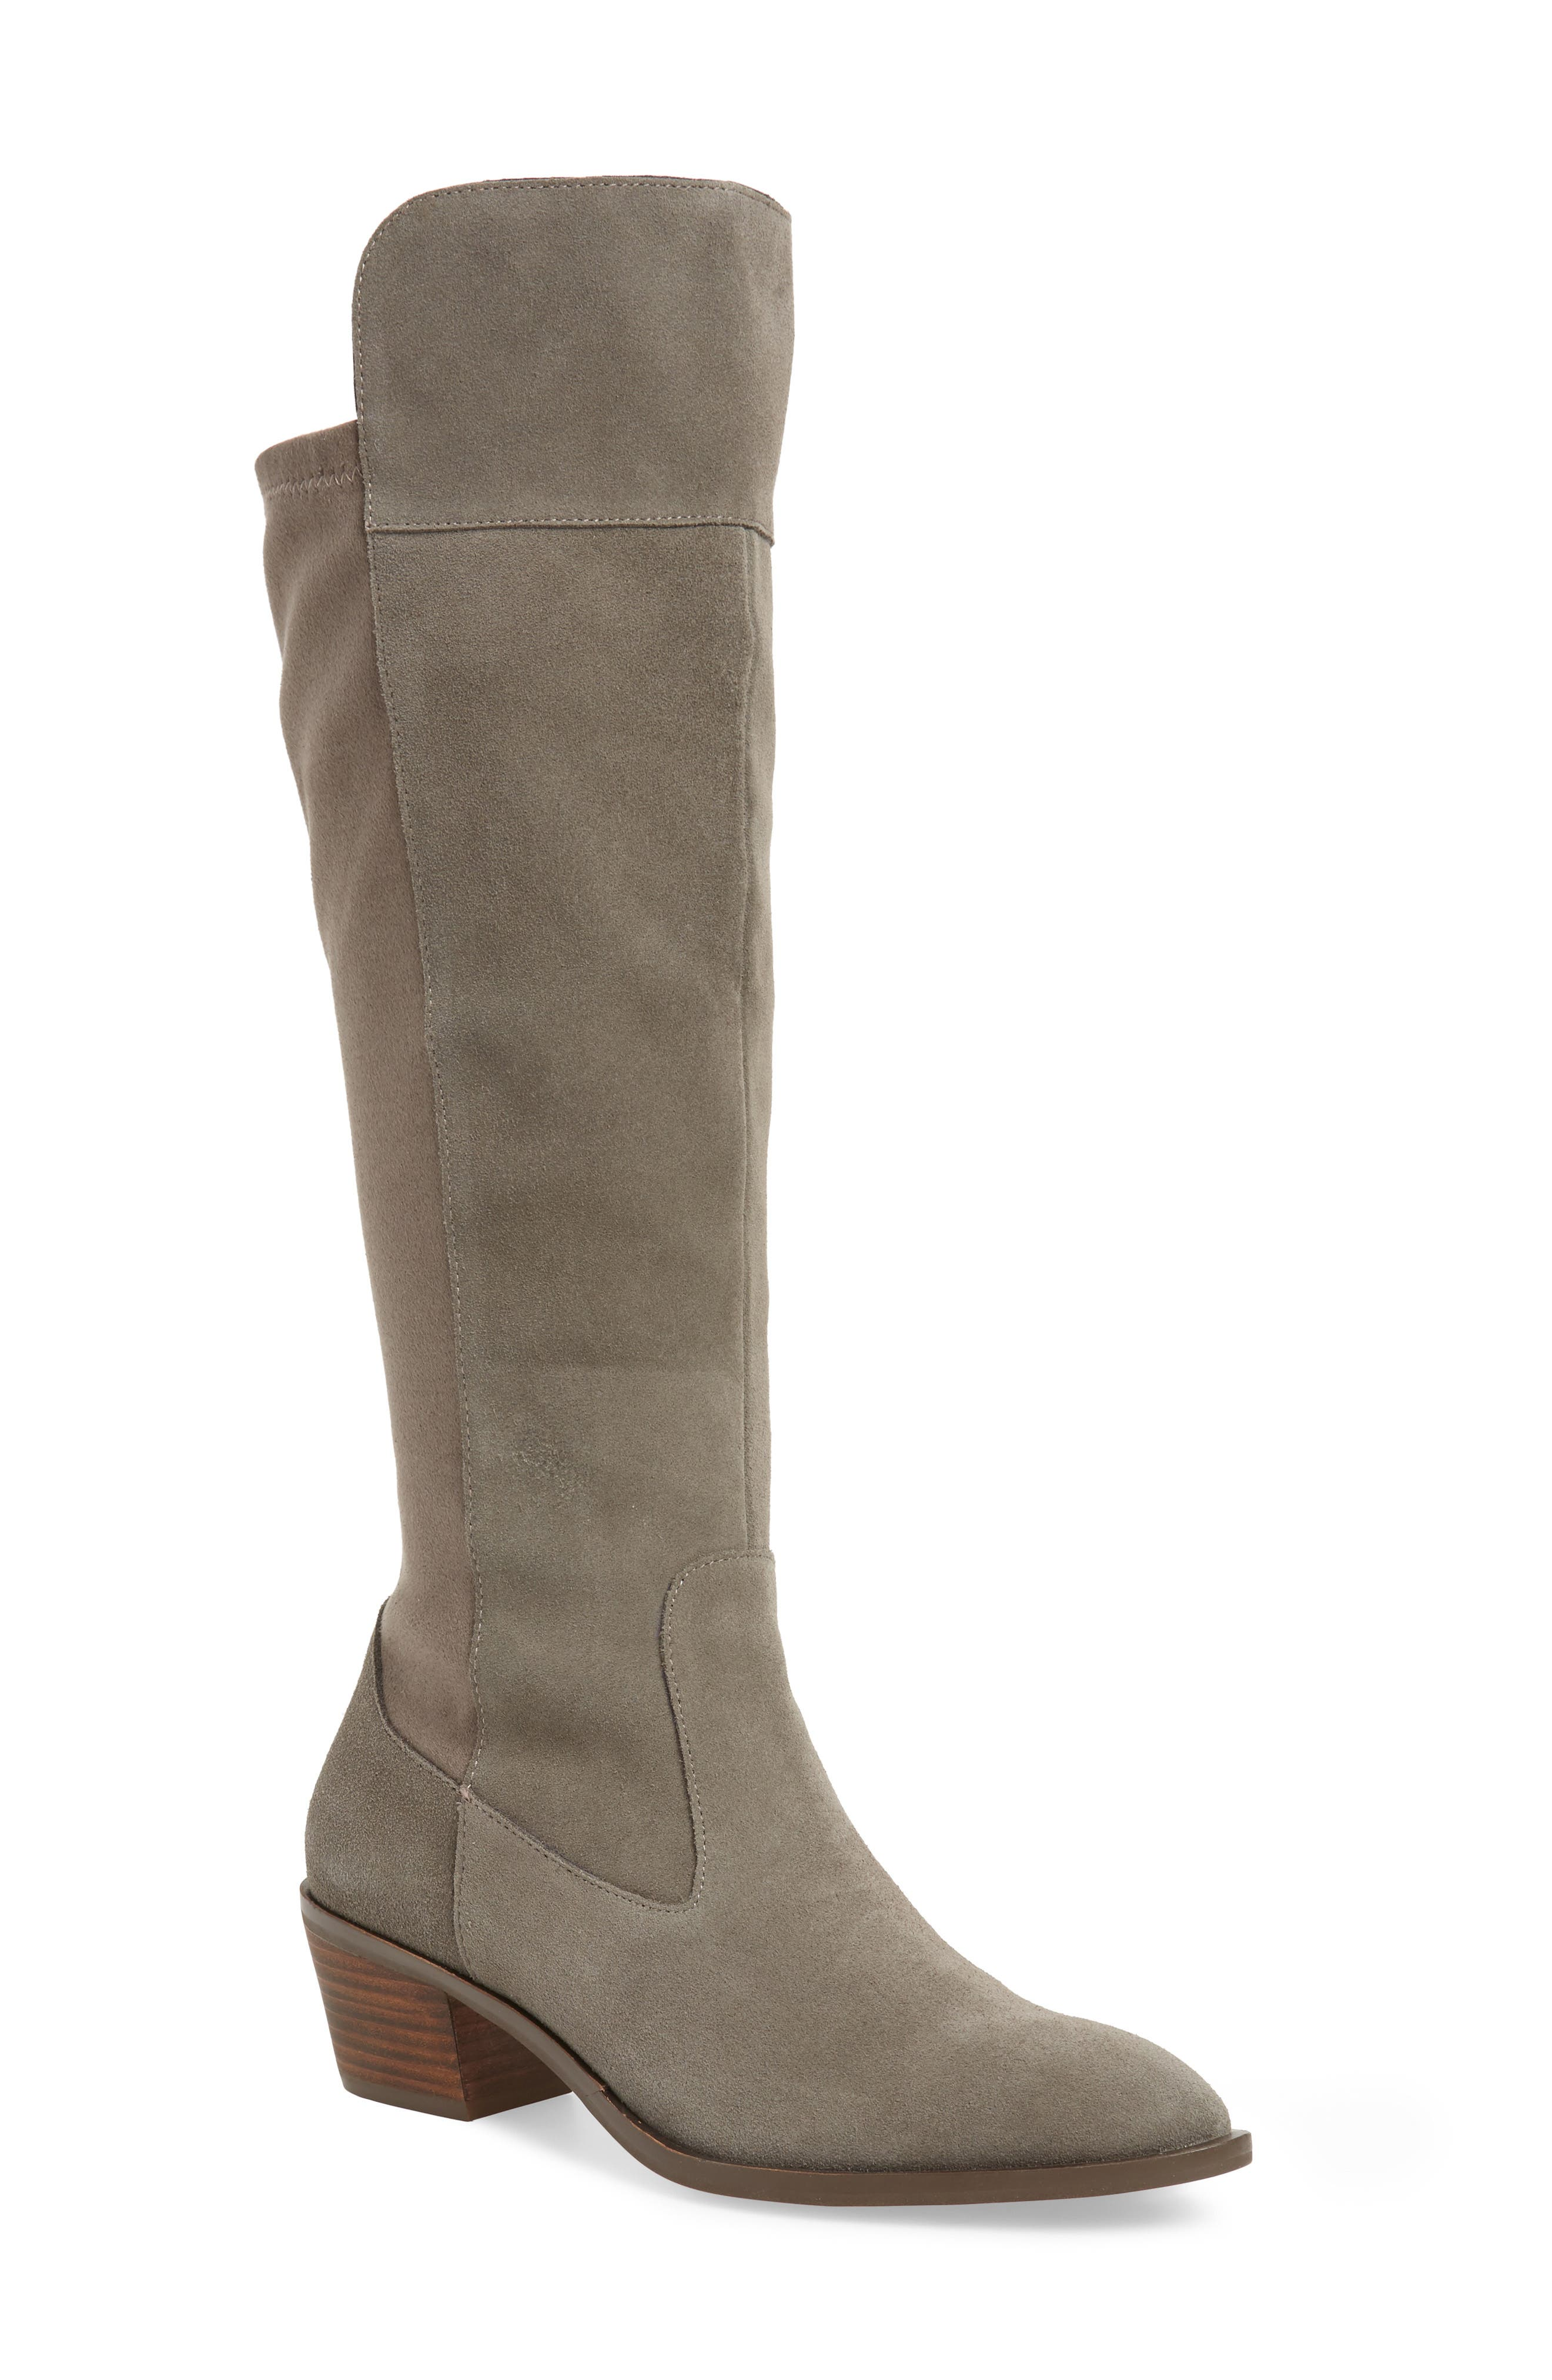 SOLE SOCIETY Noamie Knee High Boot, Main, color, LONDON RAIN SUEDE